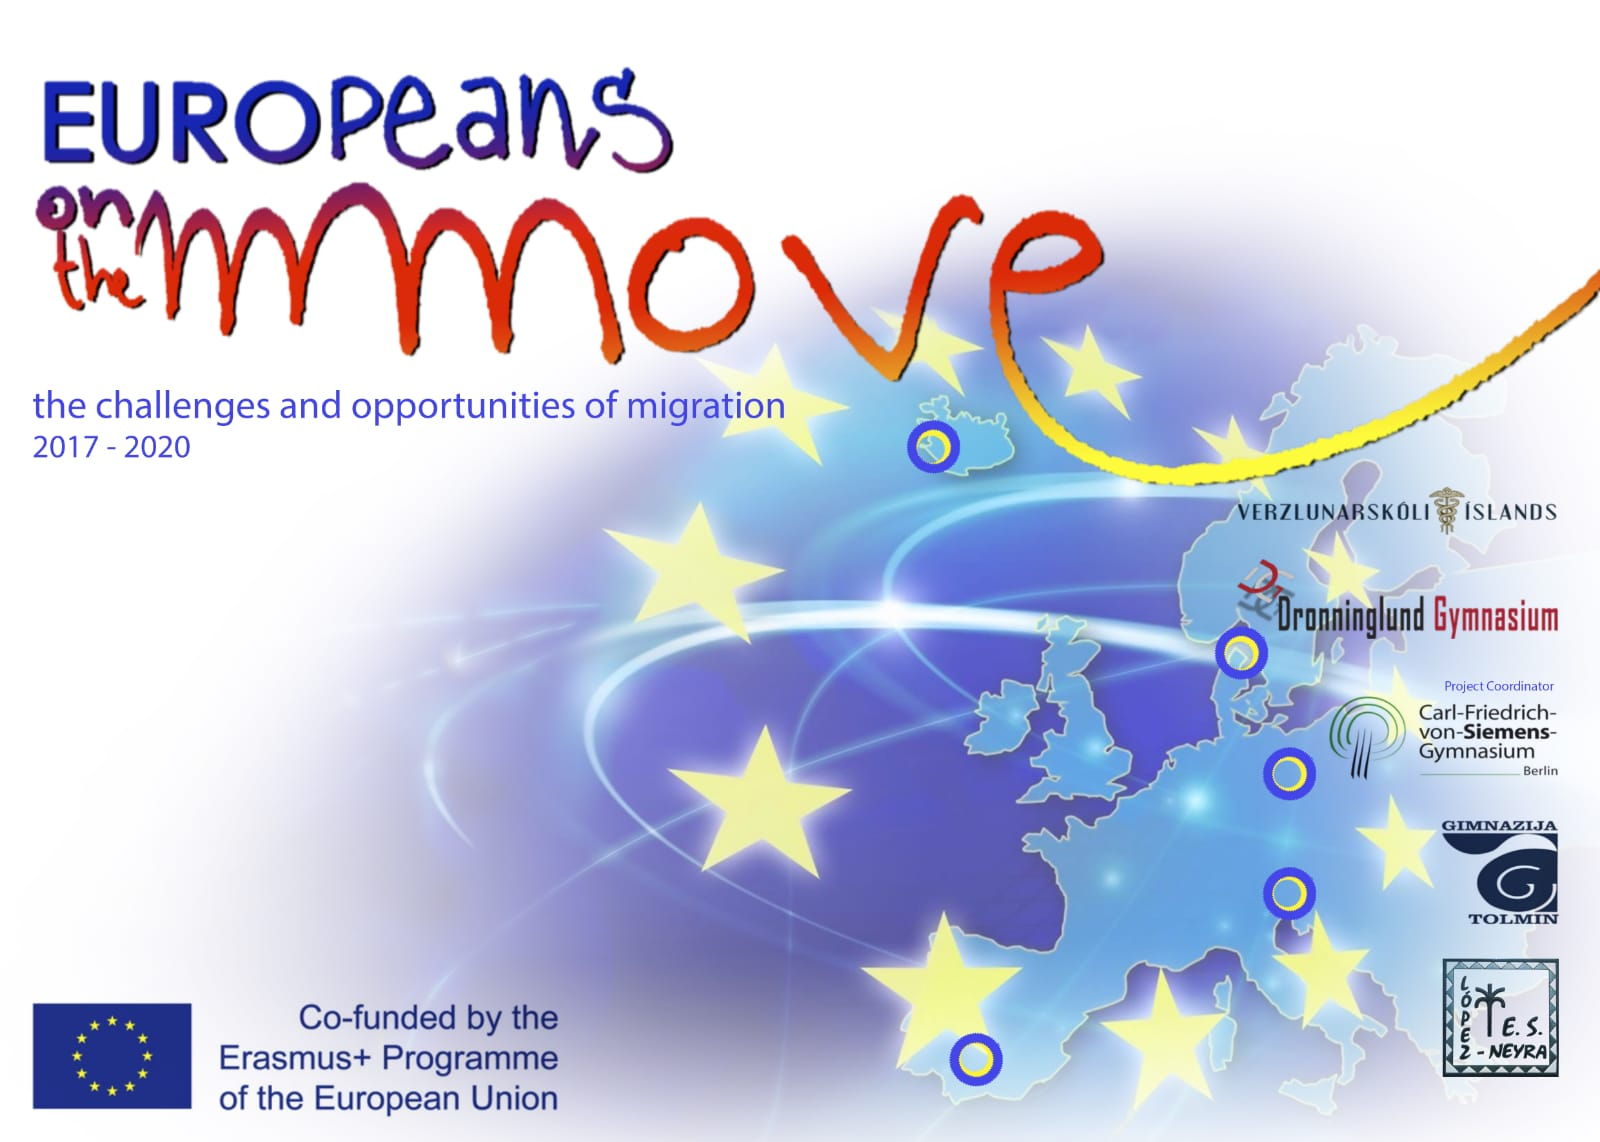 EUROPEANS ON THE MOVE